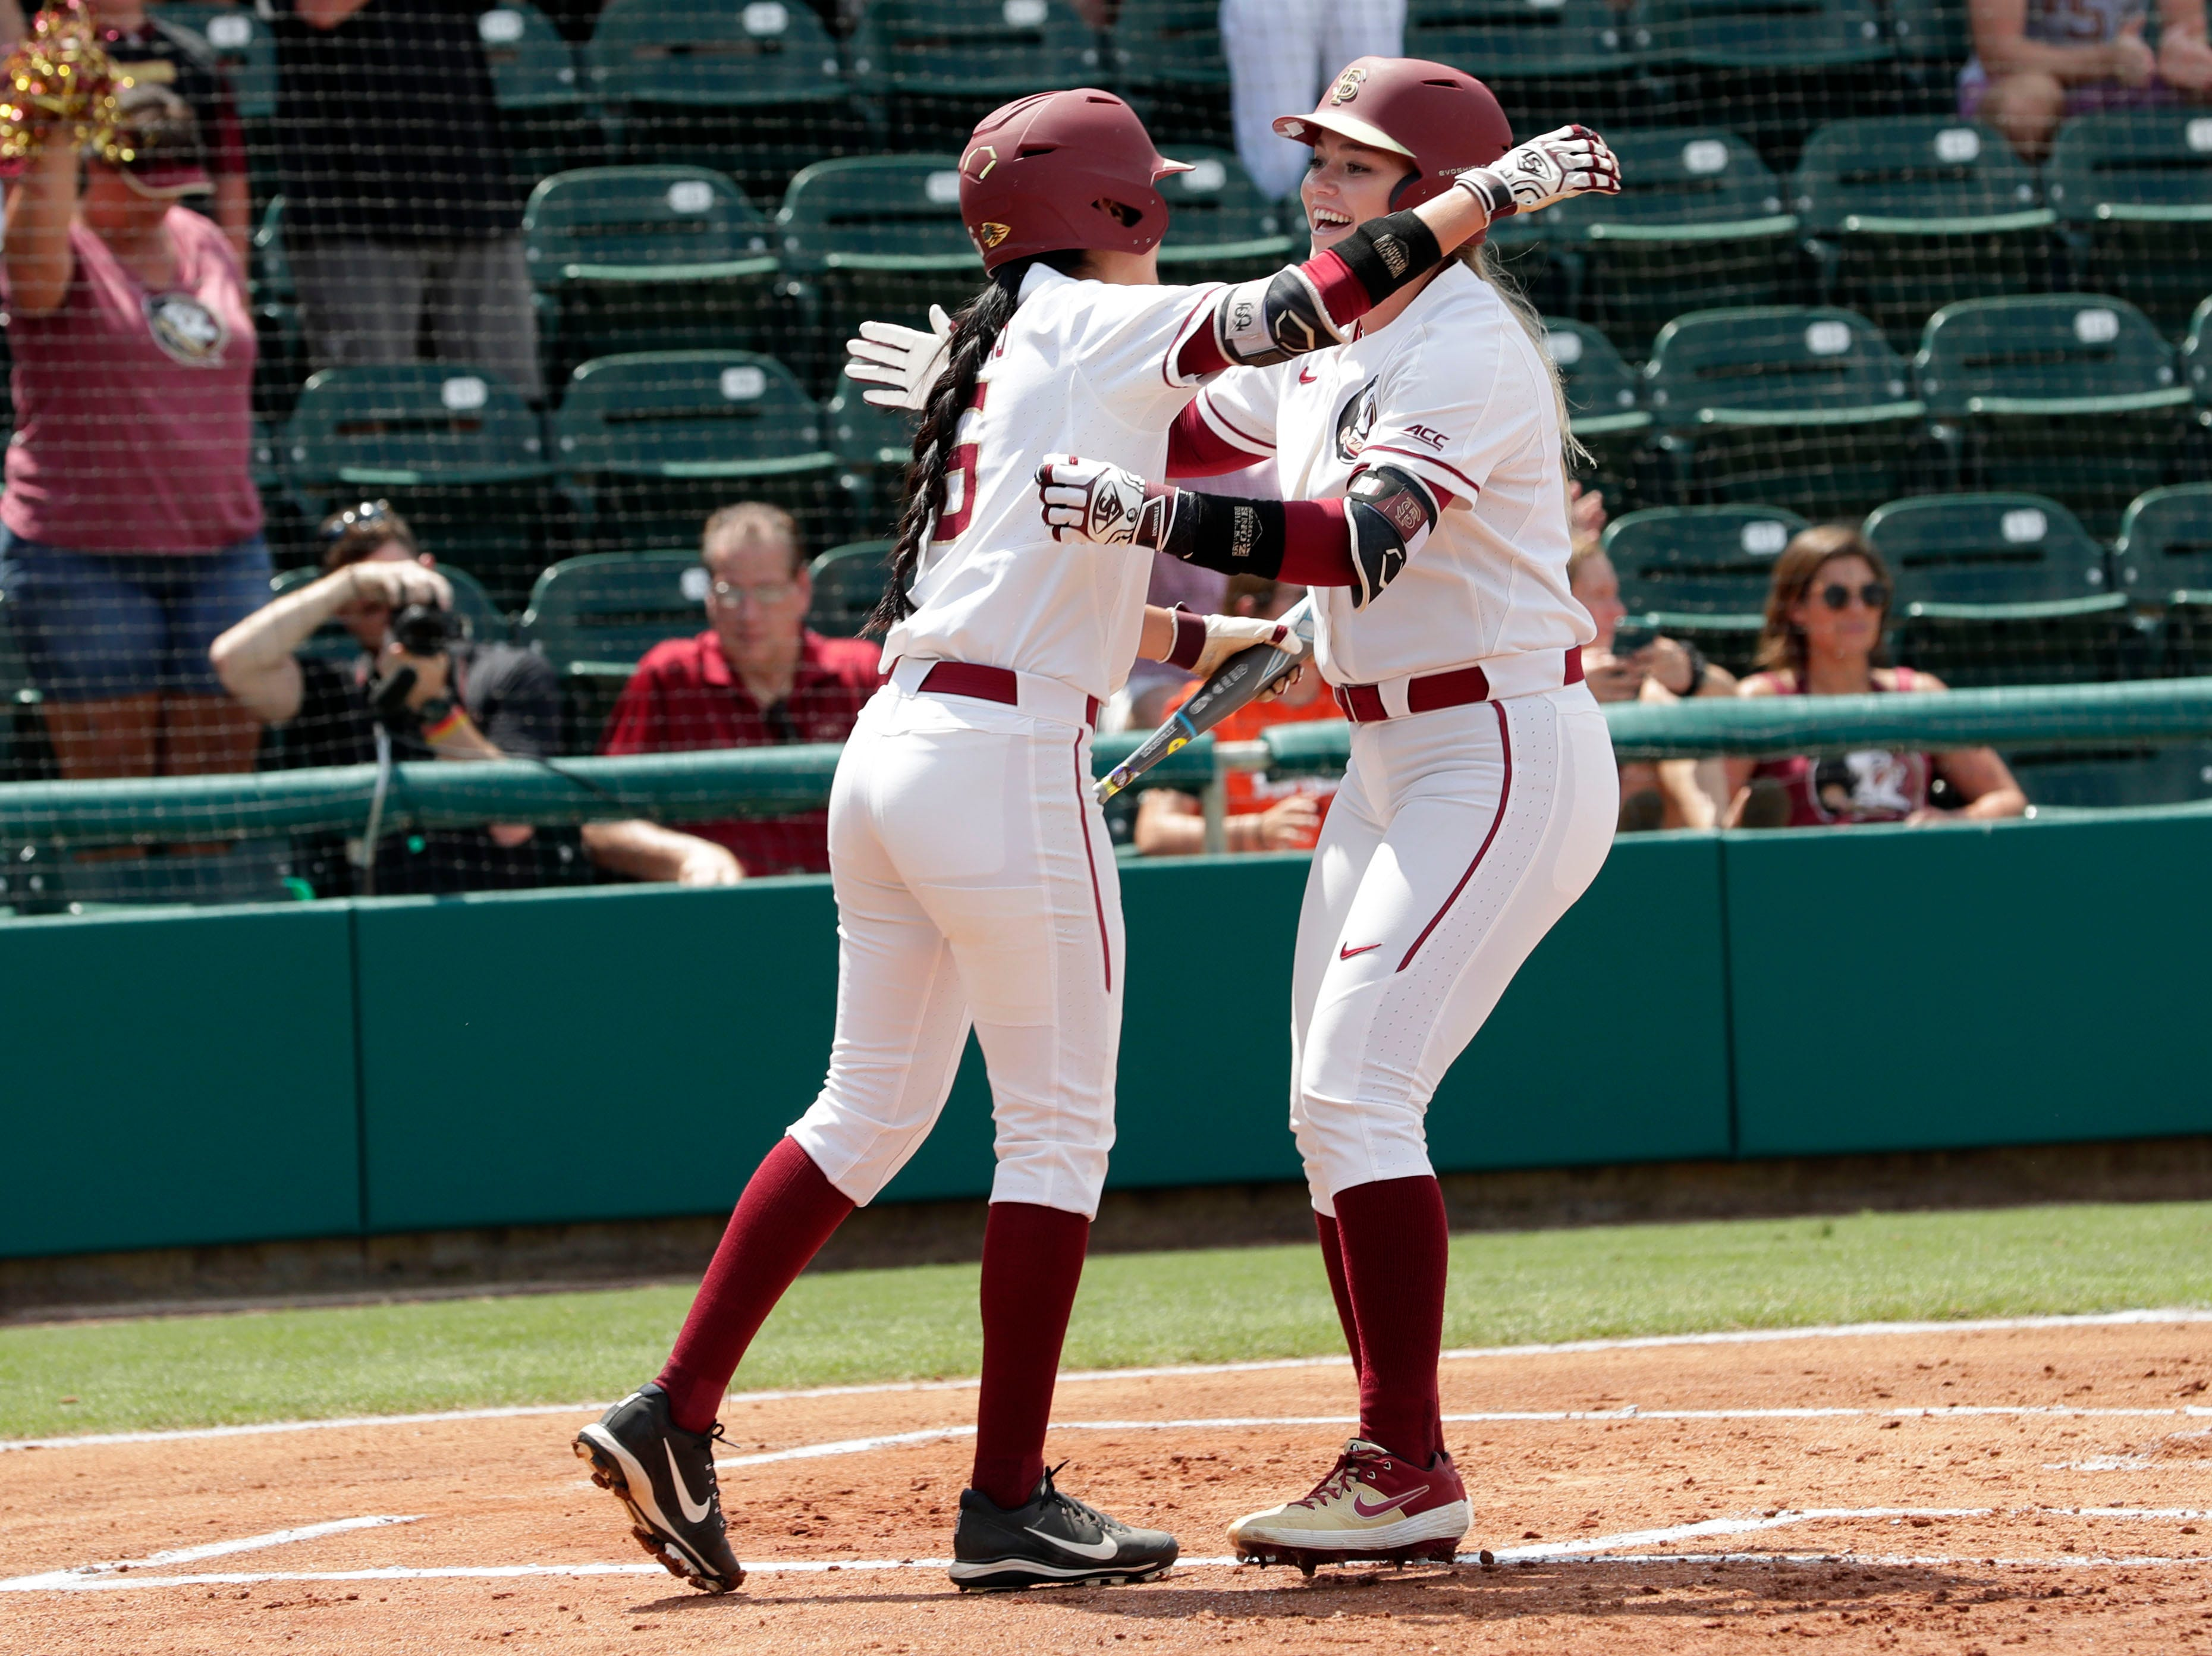 Florida State Seminoles outfielder Zoe Casas (6) hugs Florida State Seminoles starting pitcher/relief pitcher Cassidy Davis (70) after Davis scores a home run. The Florida State Seminoles host the Bethune-Cookman Wildcats in the first round of the NCAA Regional Playoffs Friday, May 17, 2019.